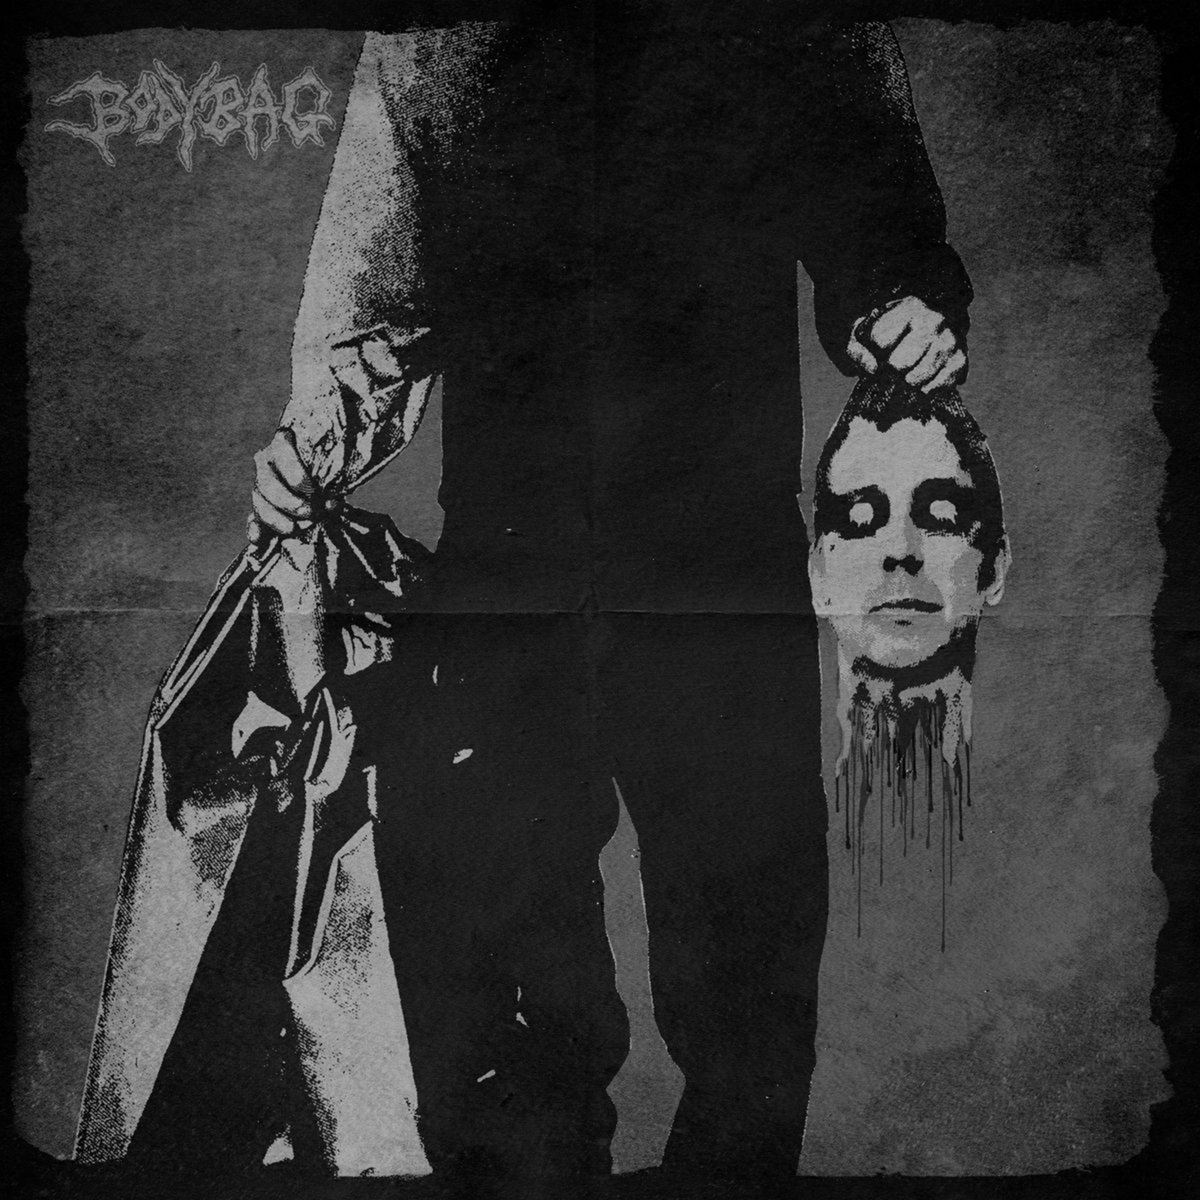 General Surgery / Bodybag 12""